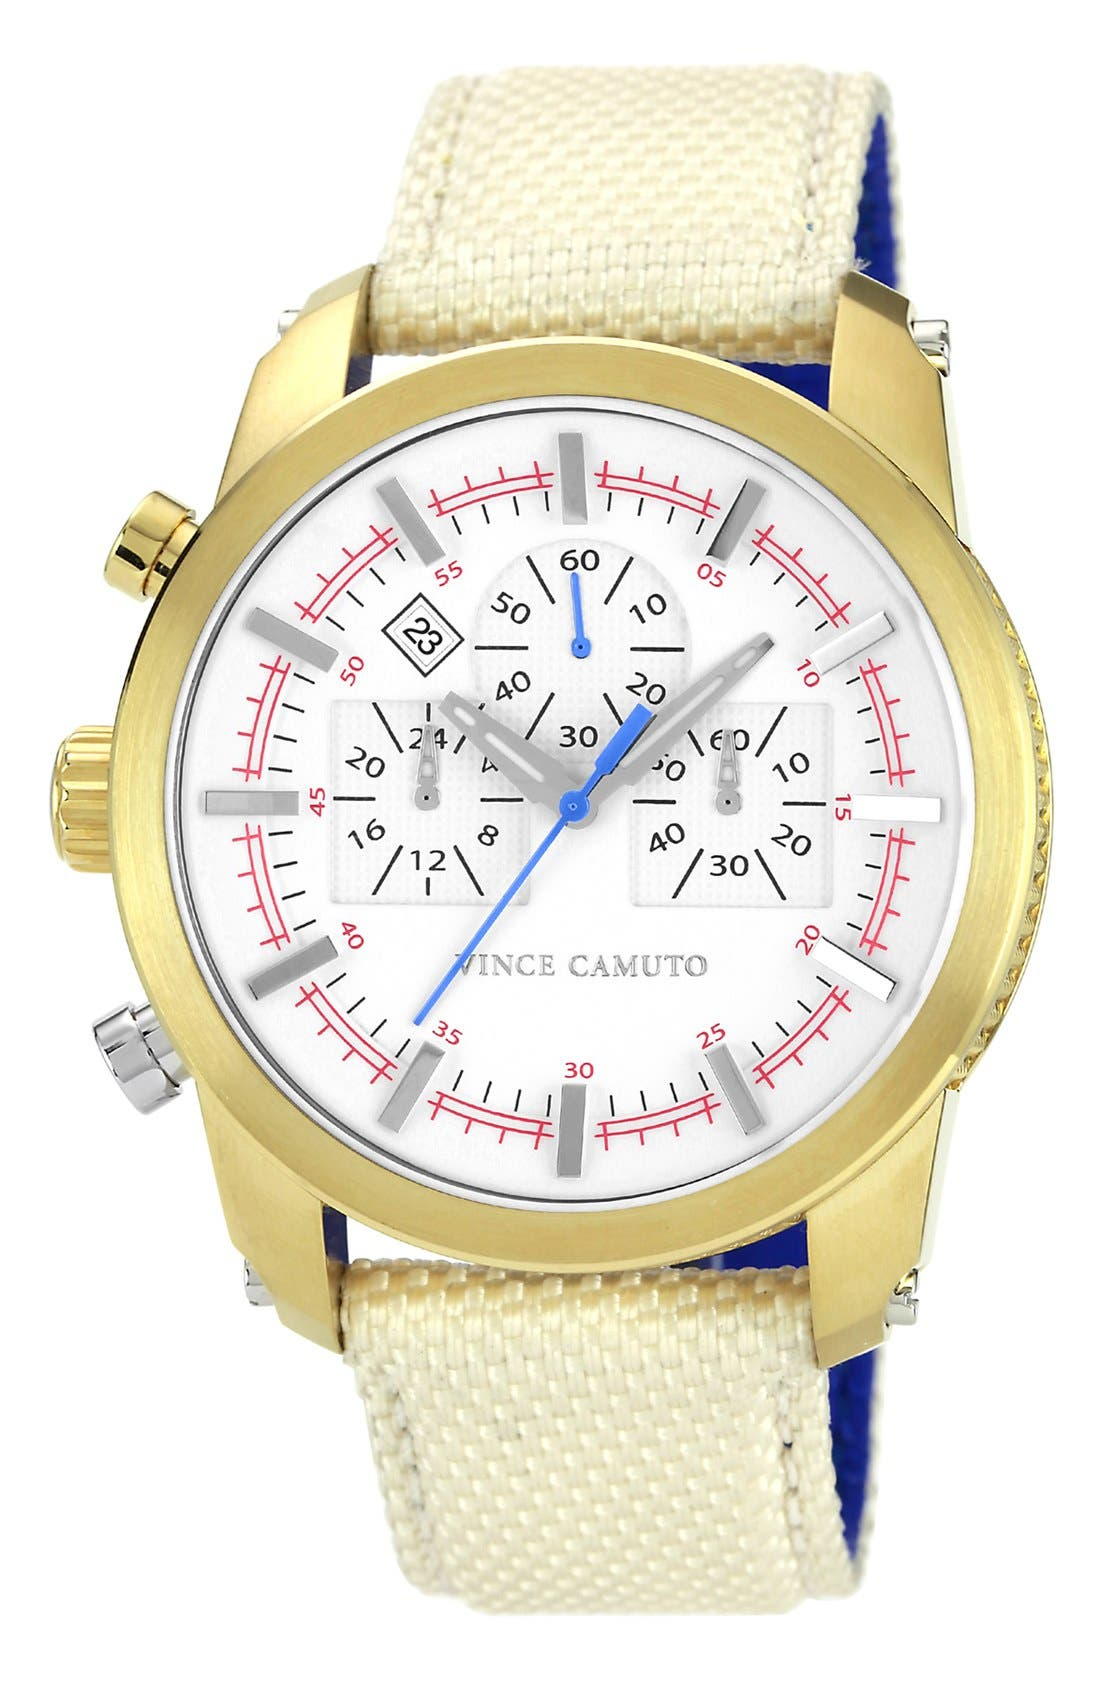 Main Image - Vince Camuto Round Chronograph Watch, 46mm